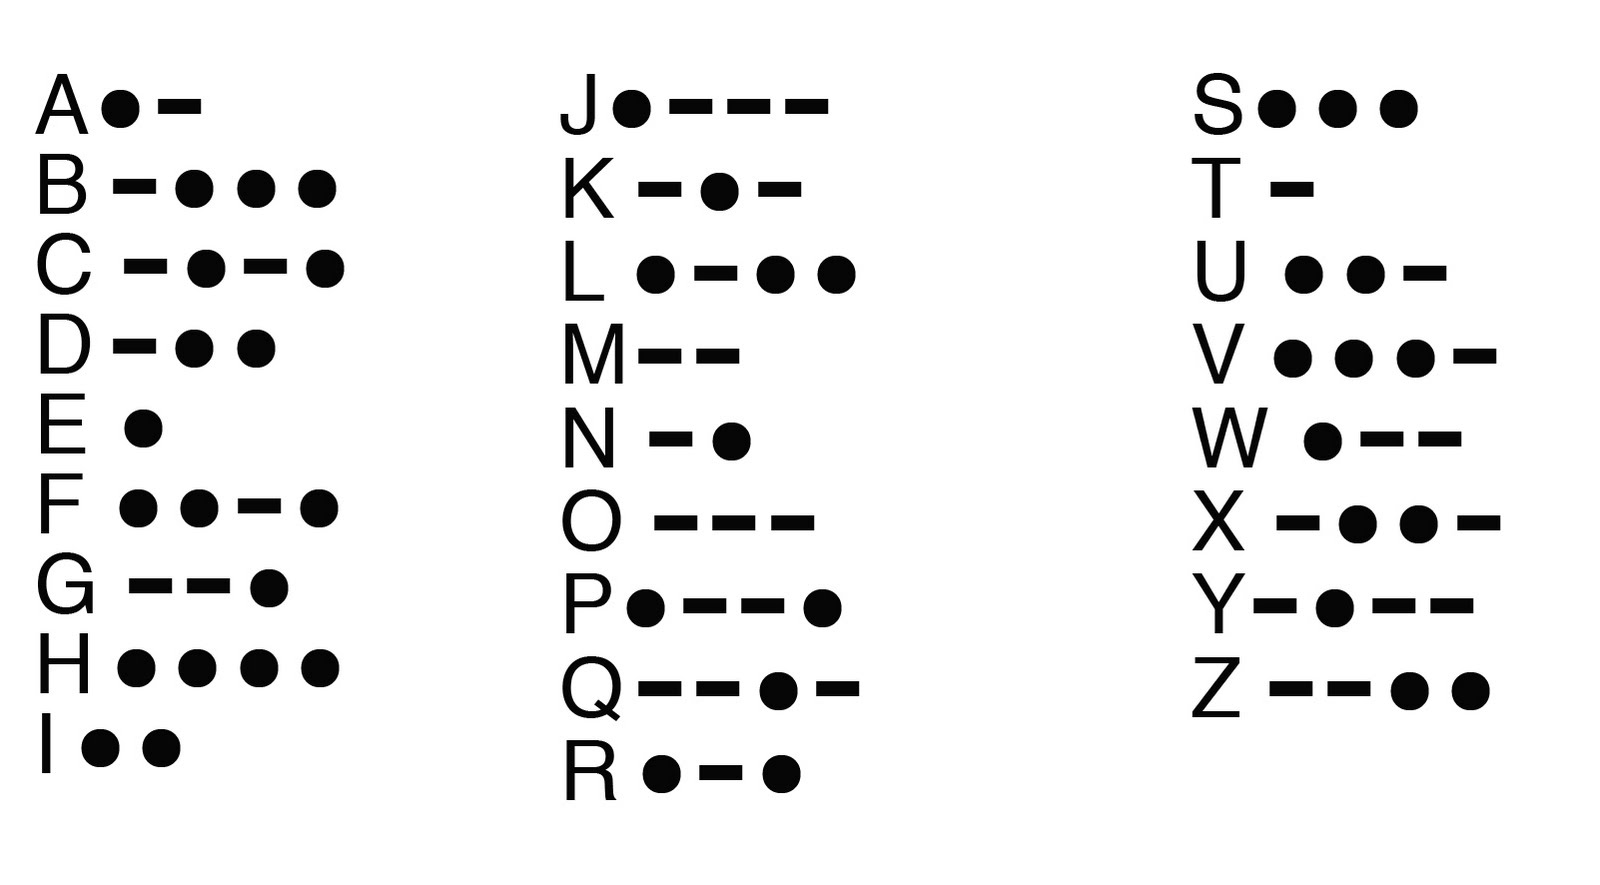 Rules of Morse Code